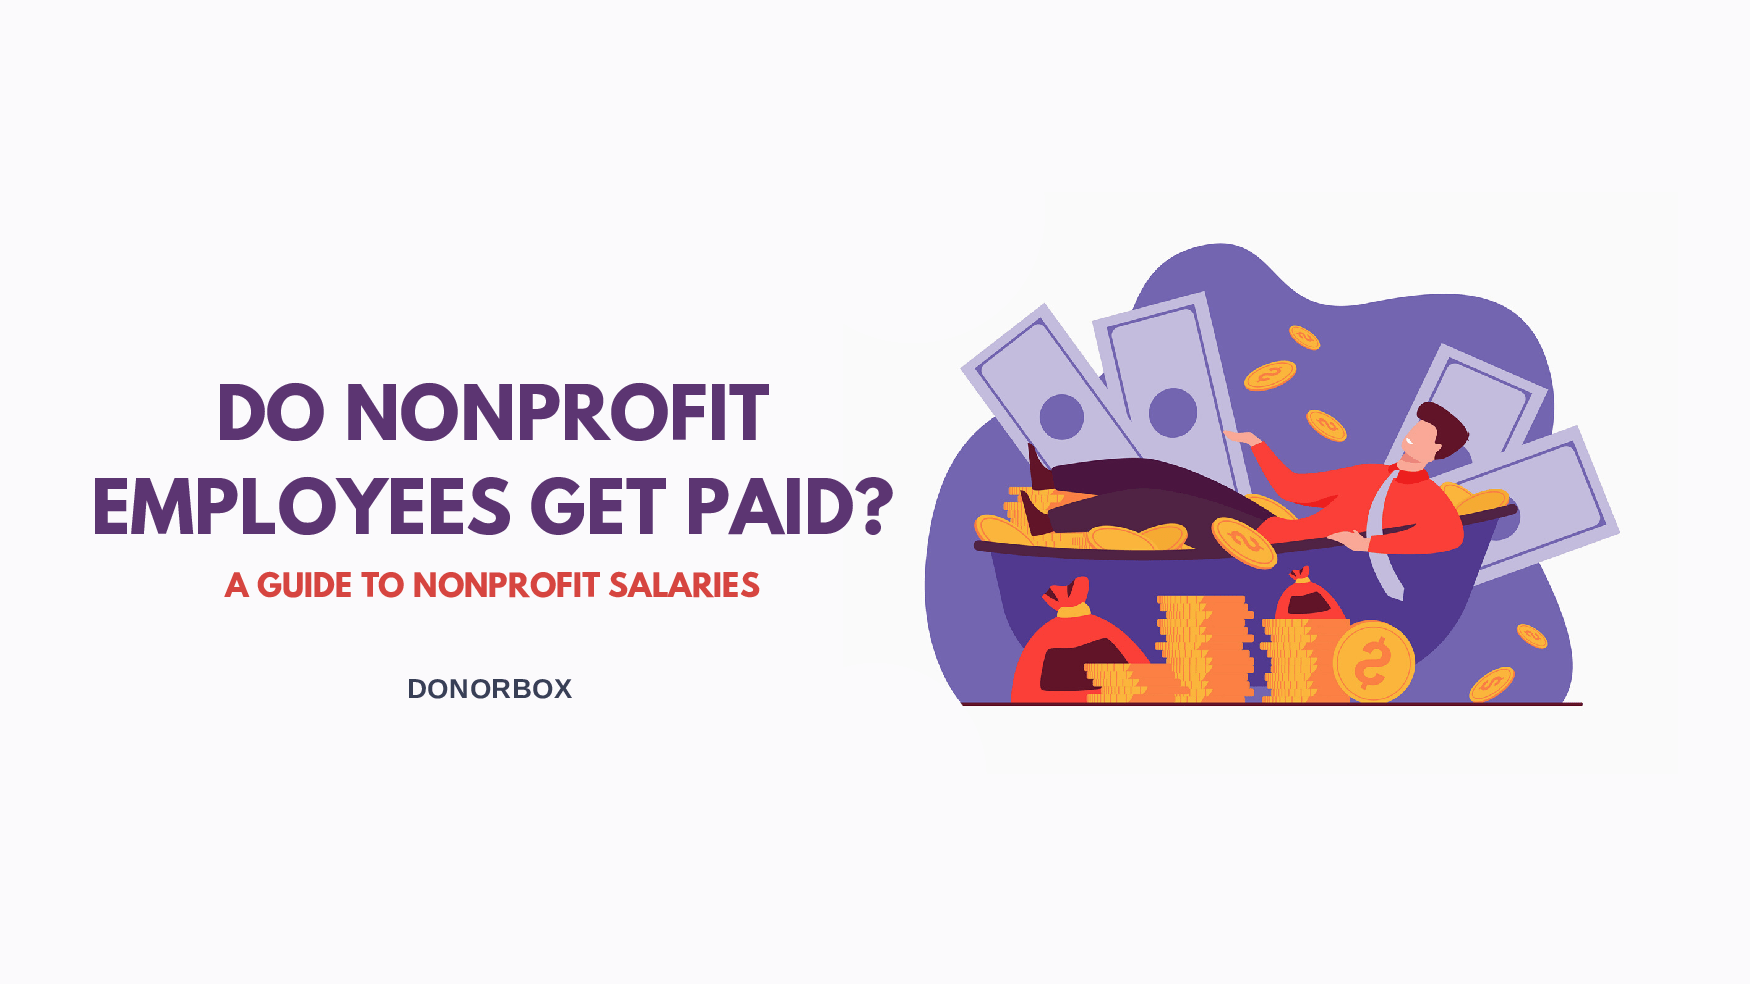 Do Nonprofit Employees Get Paid? A Guide to Nonprofit Salaries